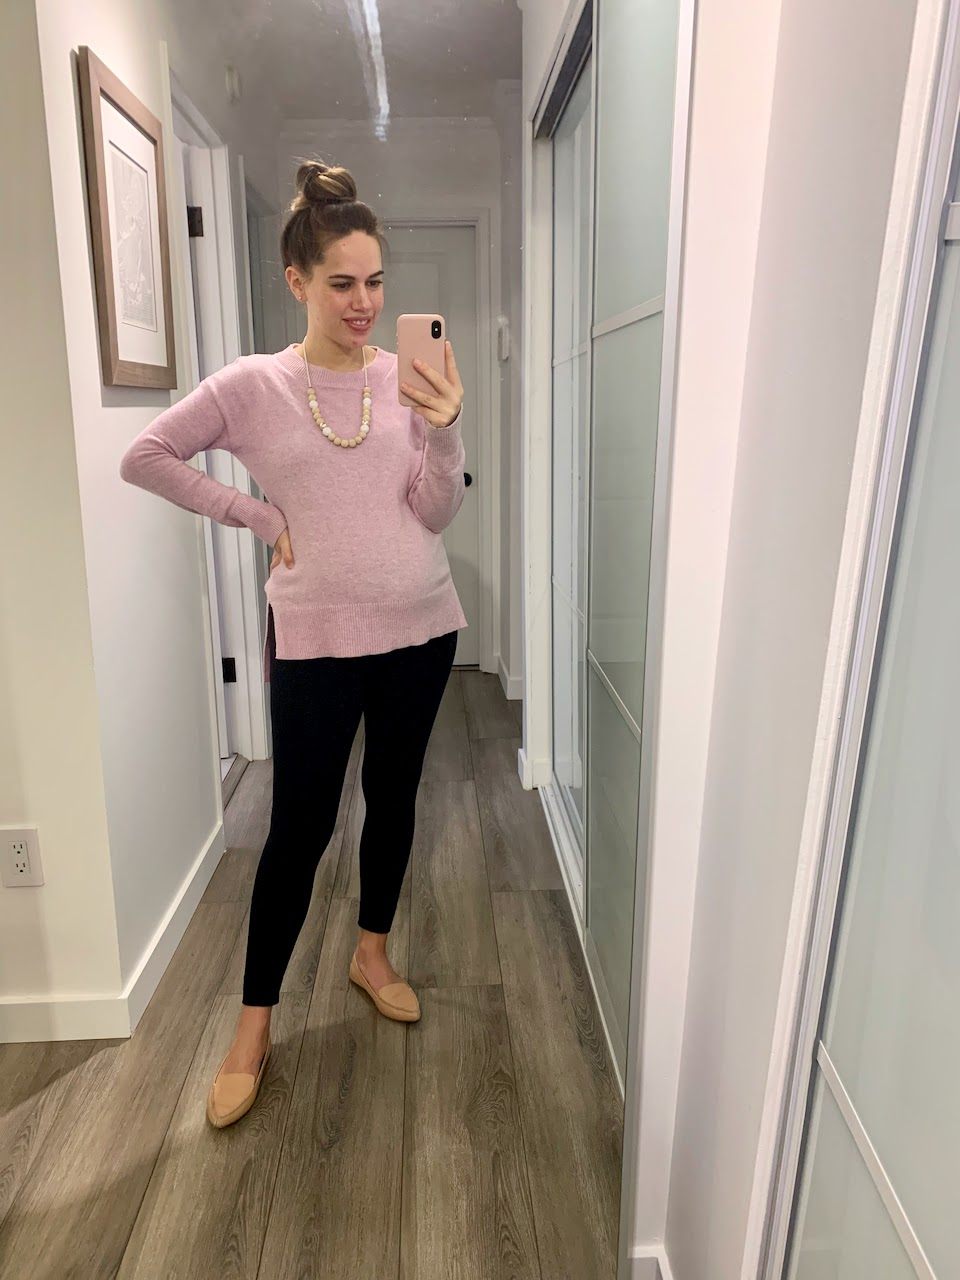 Jules in Flats - Tunic Sweater with Leggings (Business Casual Workwear on a Budget)